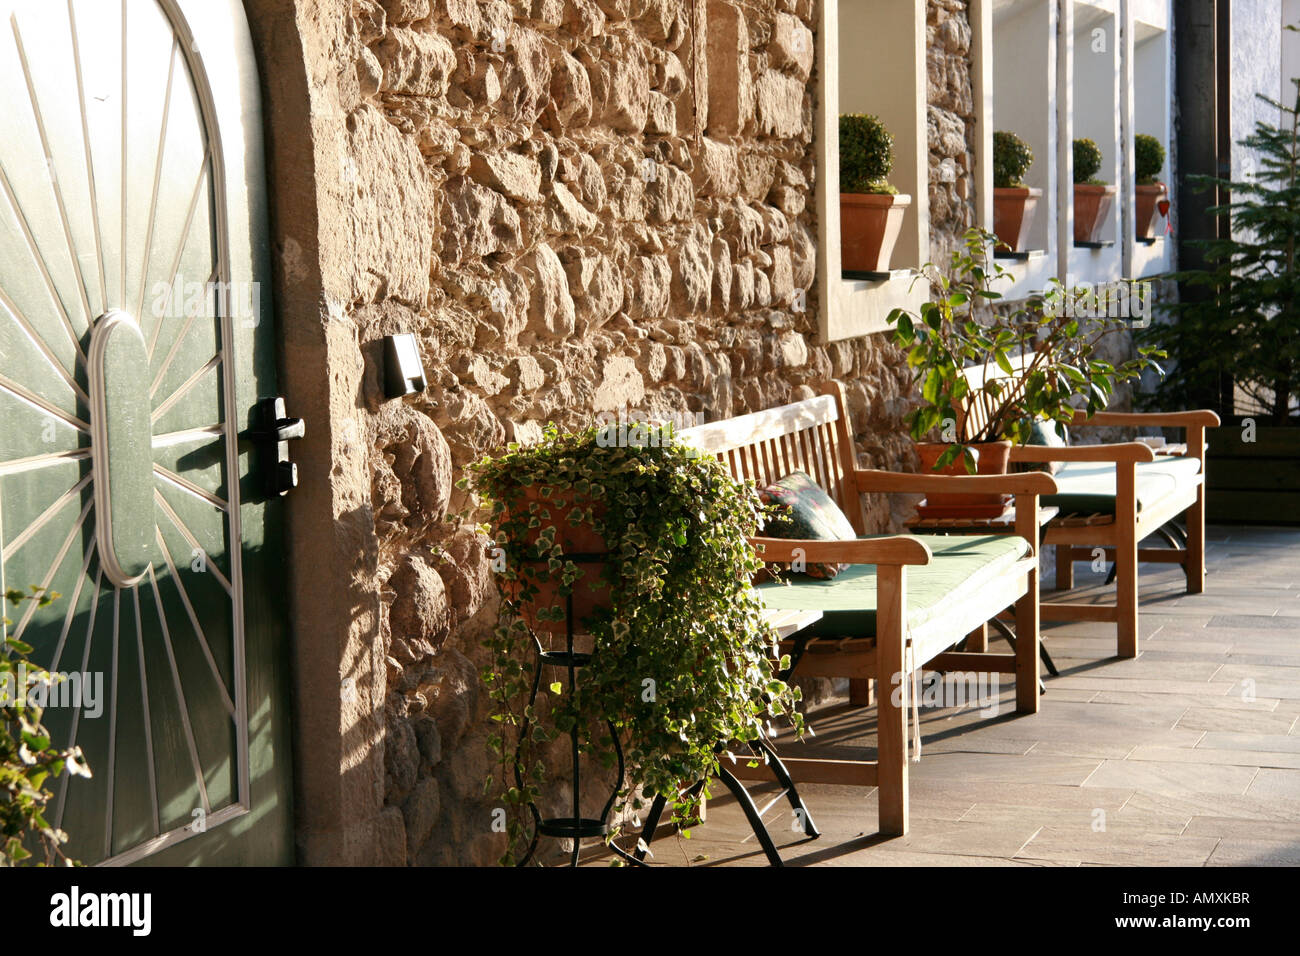 Plant Bench Indoor Potted Plants And Benches In Front Of House Stock Photo